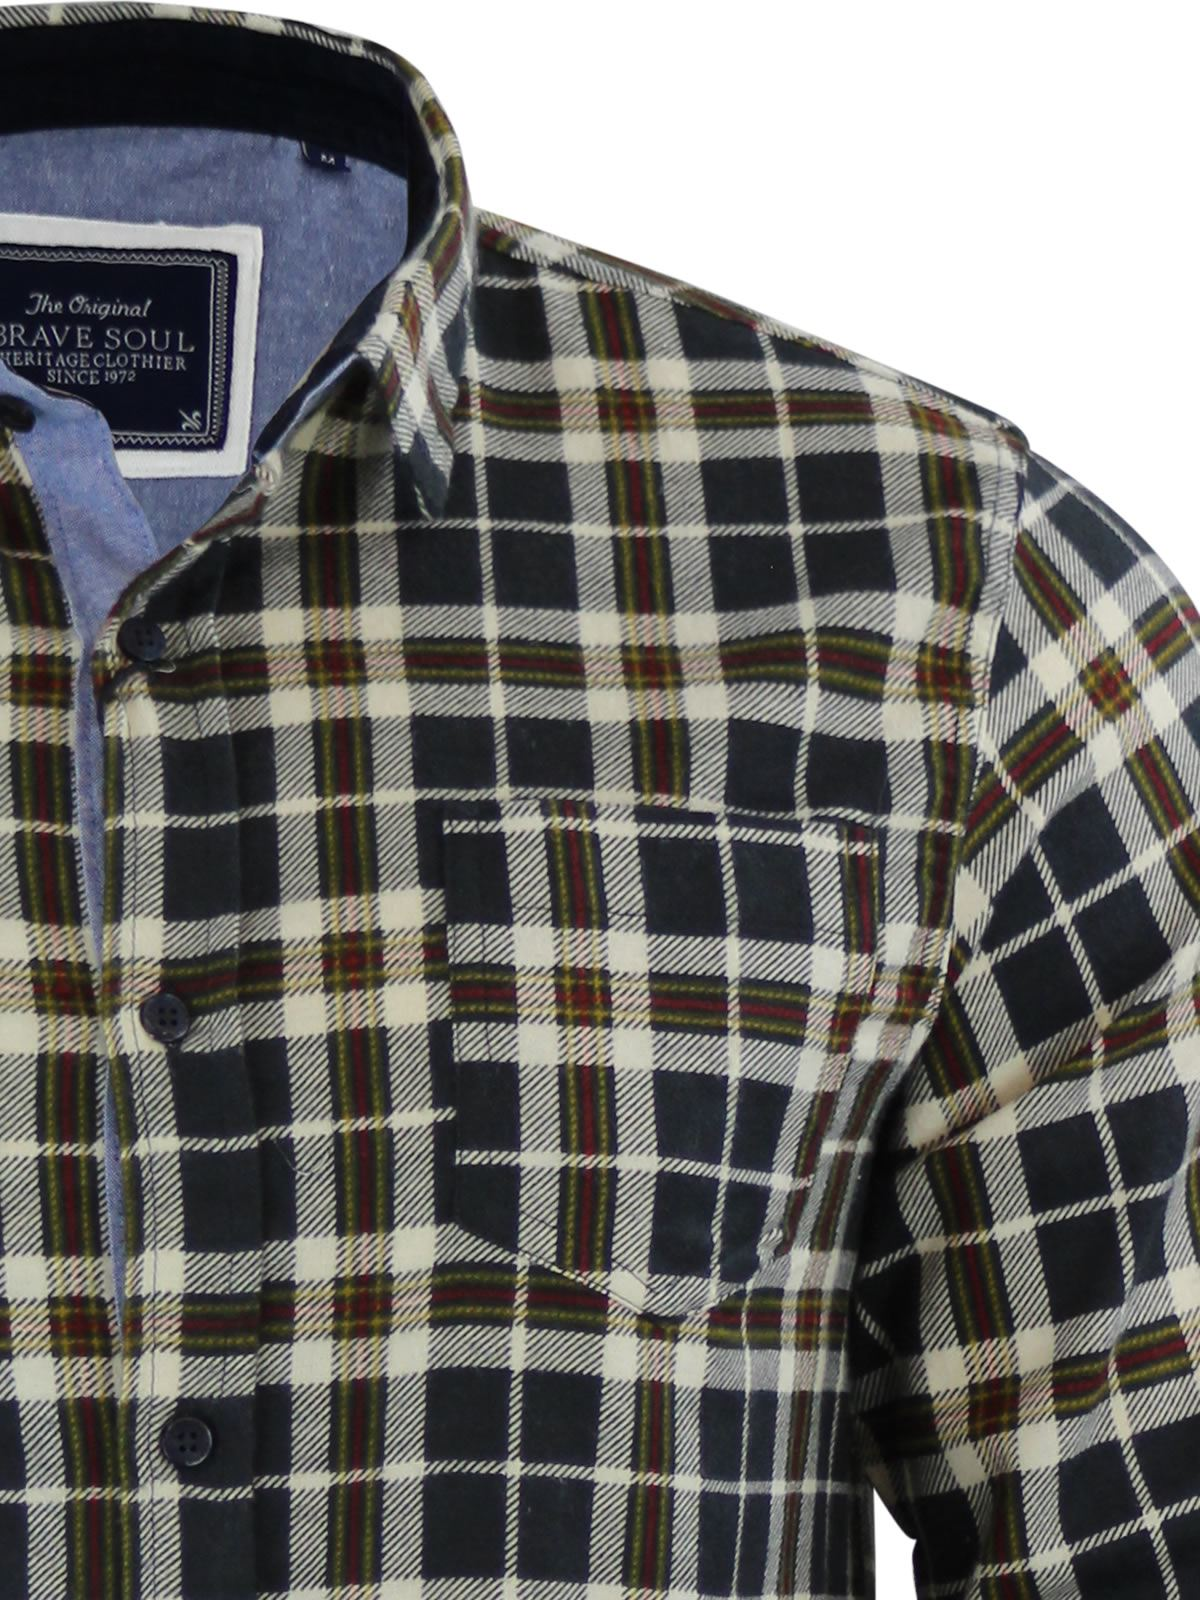 Mens-Check-Shirt-Brave-Soul-Flannel-Brushed-Cotton-Long-Sleeve-Casual-Top thumbnail 46